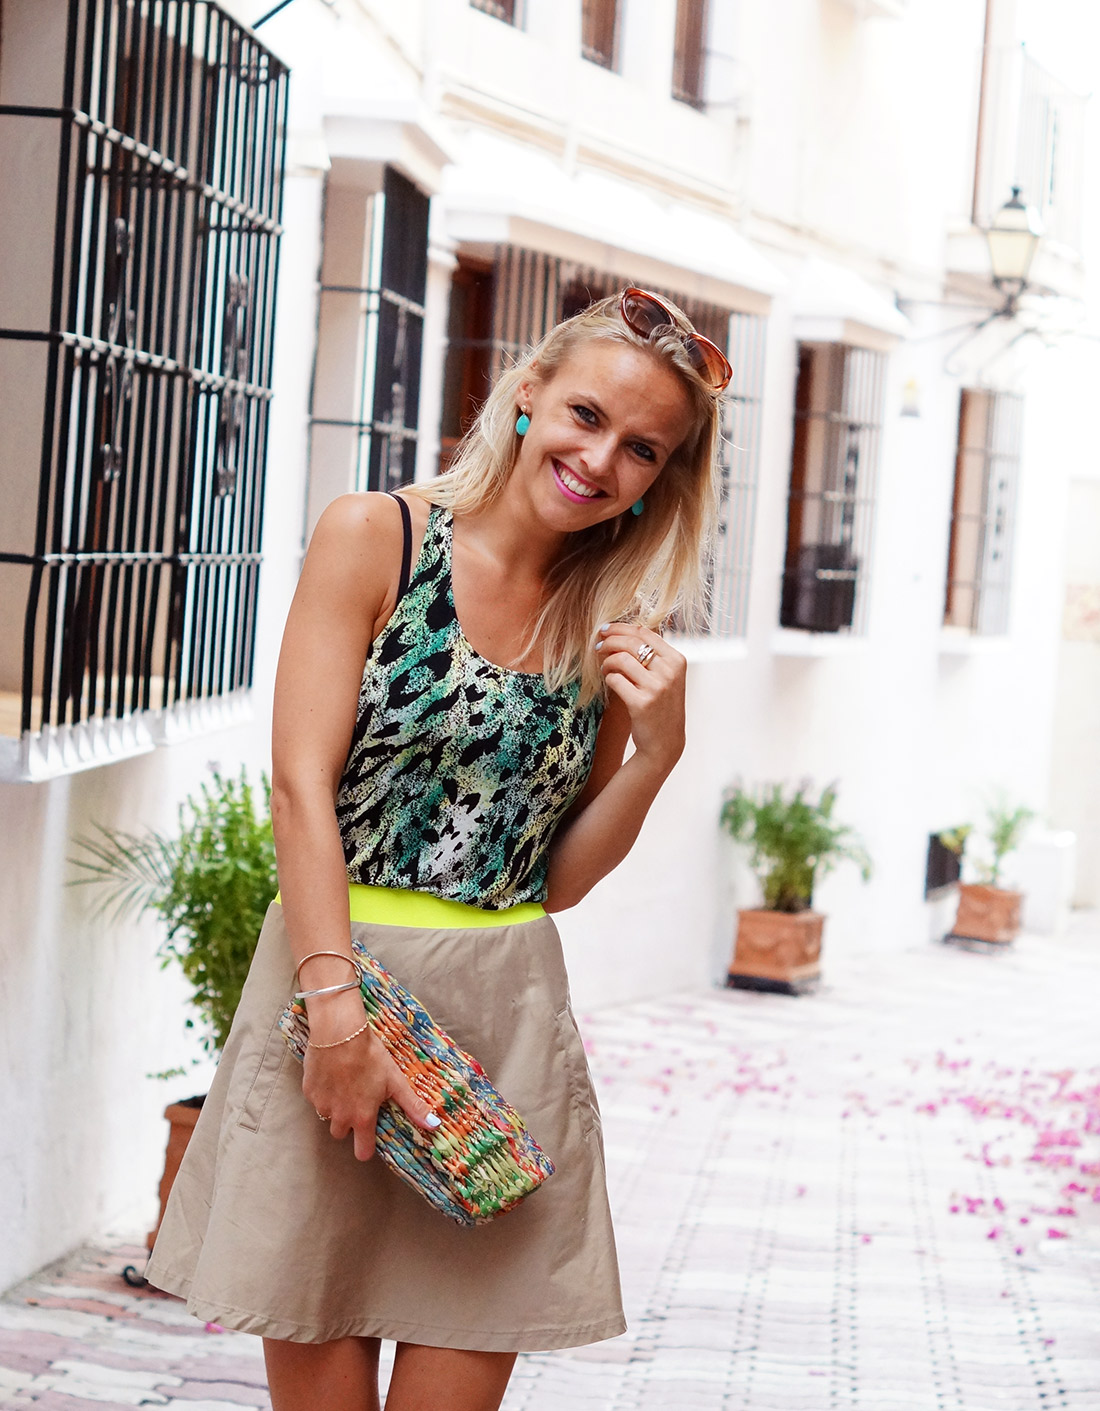 Bag-at-you---Fashion-blog---Paper-clutch-and-beige-skirt-in-Marbella-Andalusia